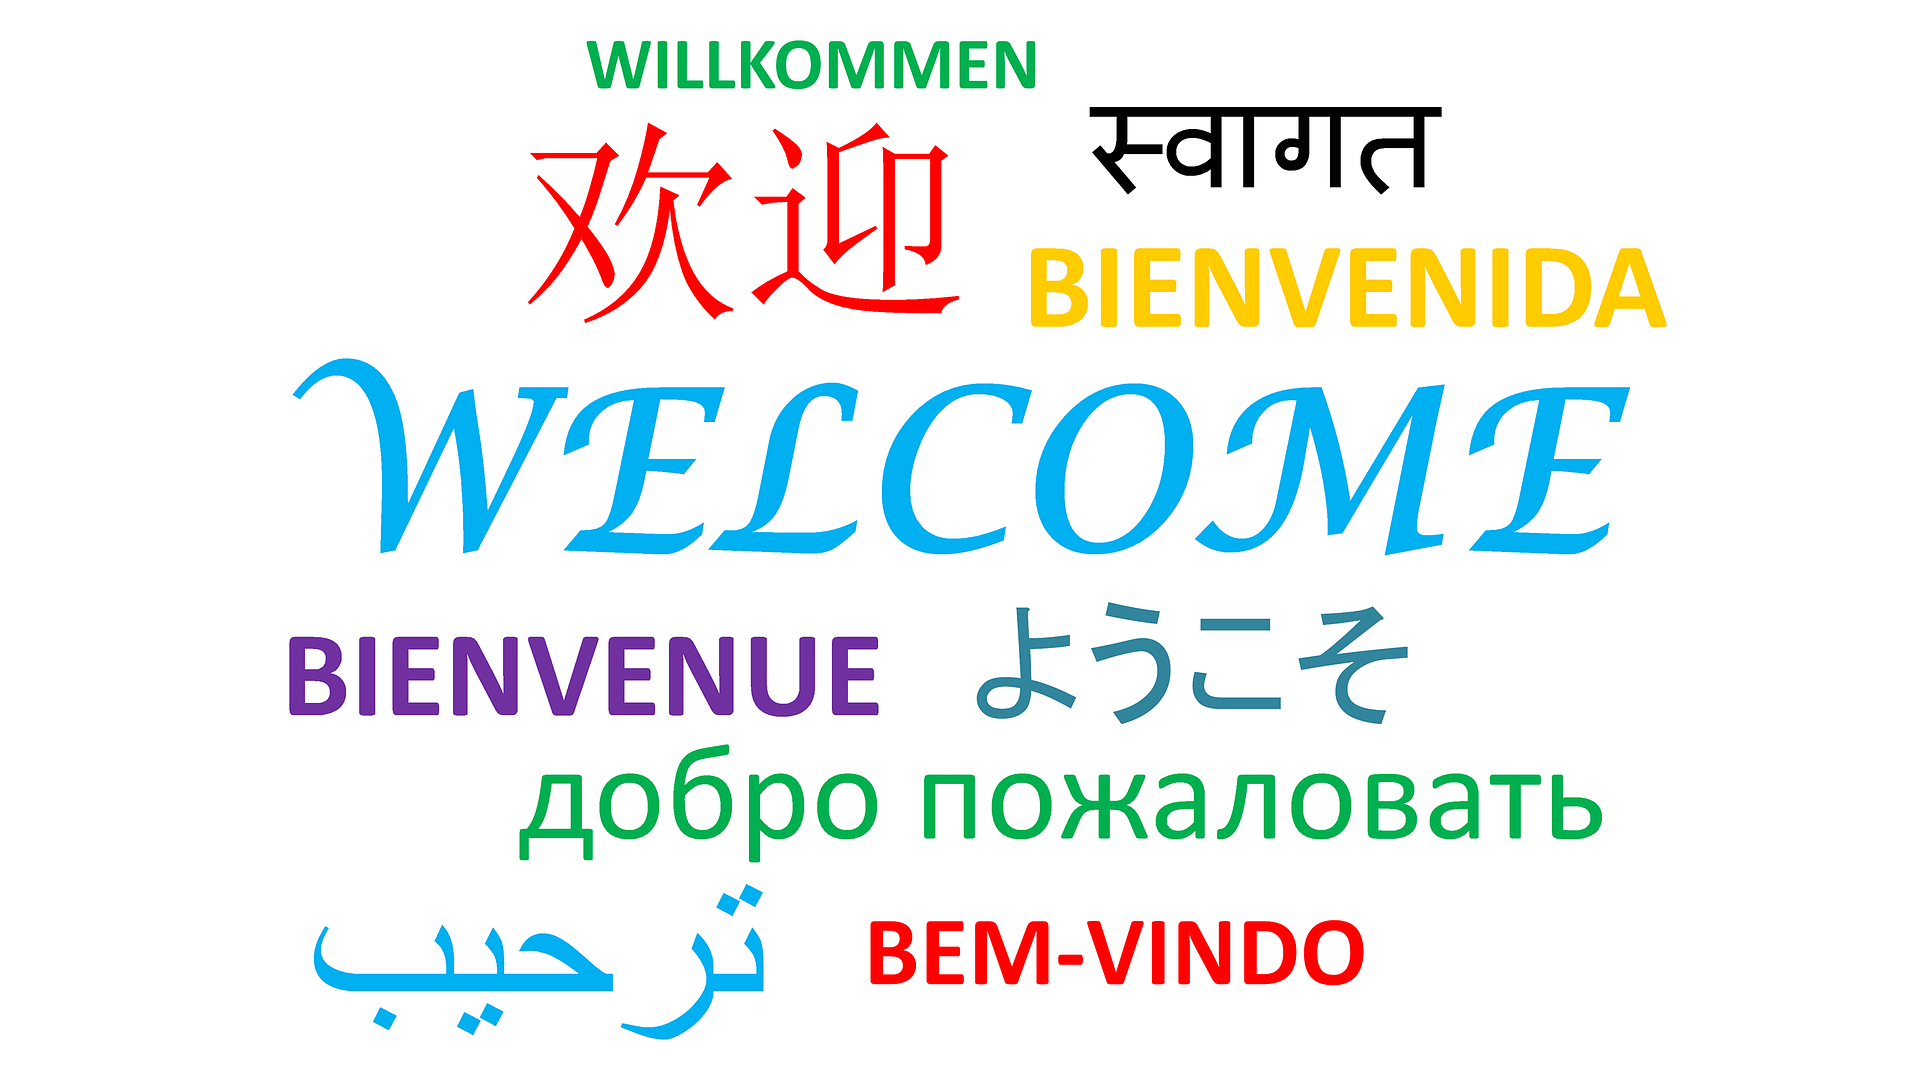 Welcome in several different languages